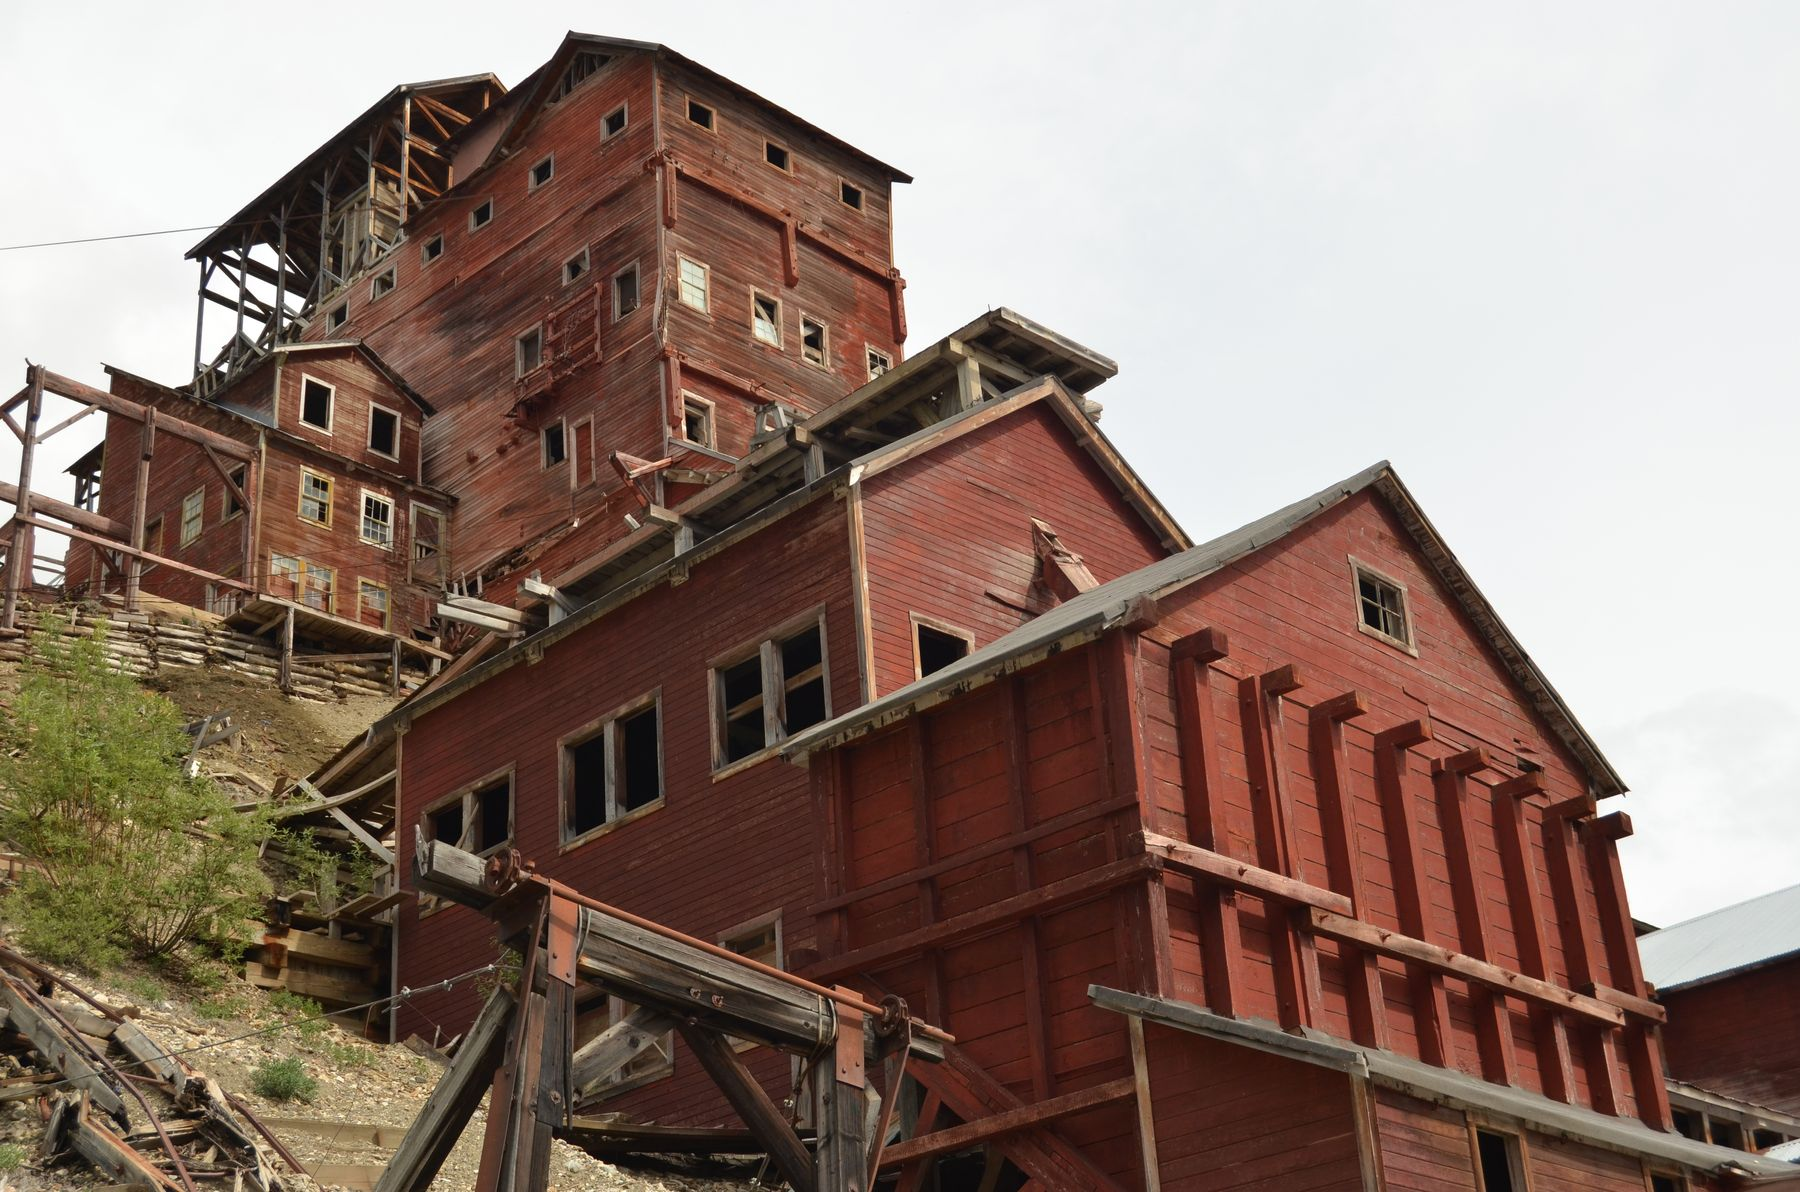 Kennecott Mina, abandoned place in Alaska